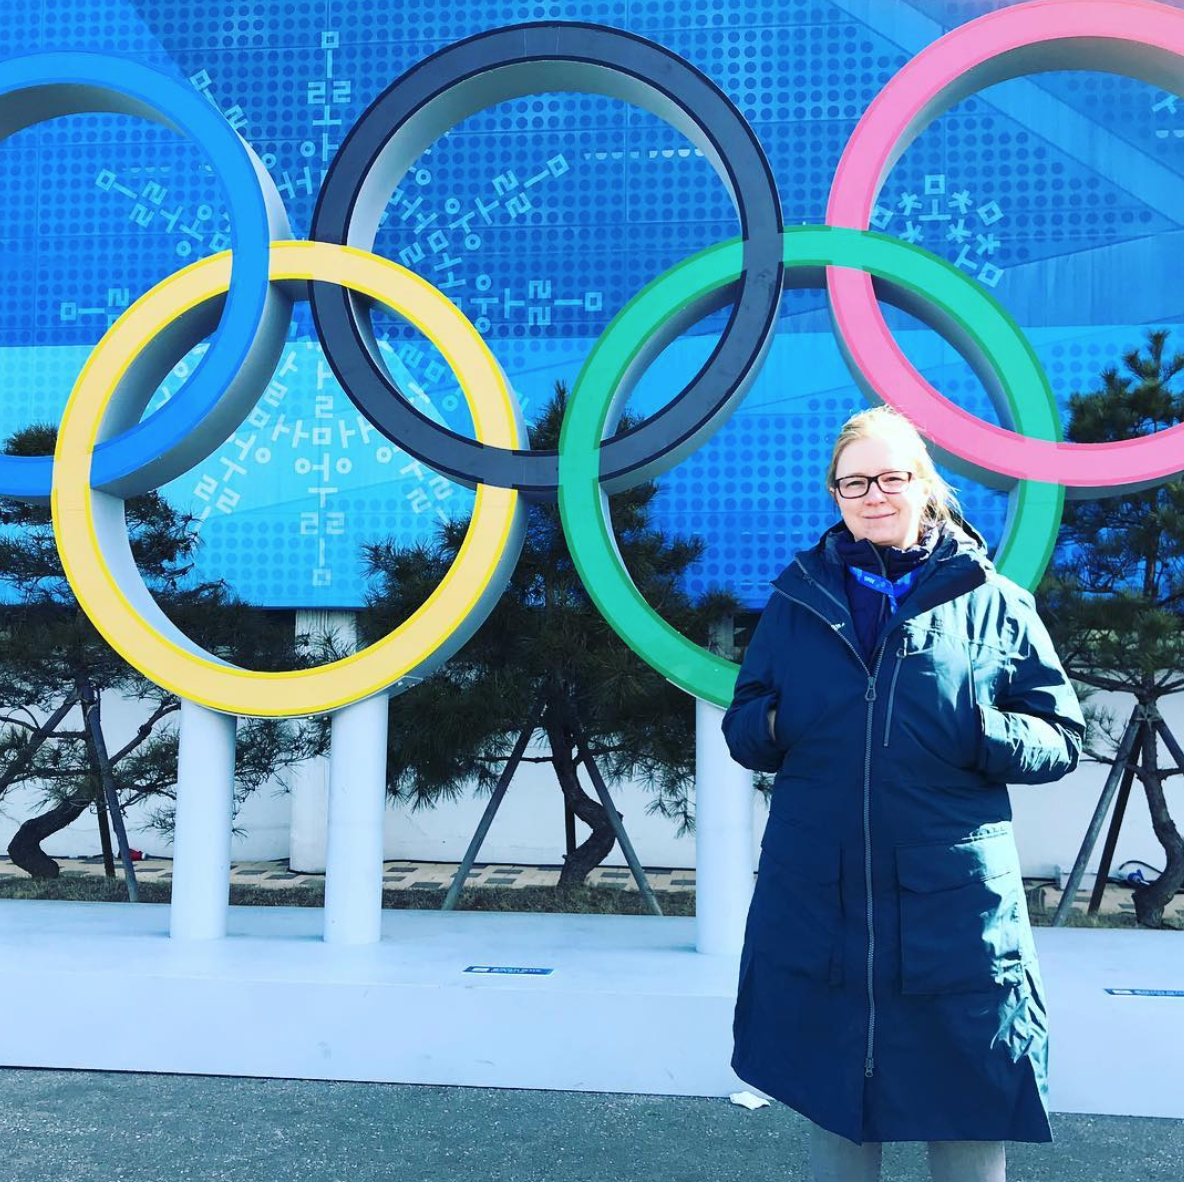 2018 Winter Olympics - South Korea